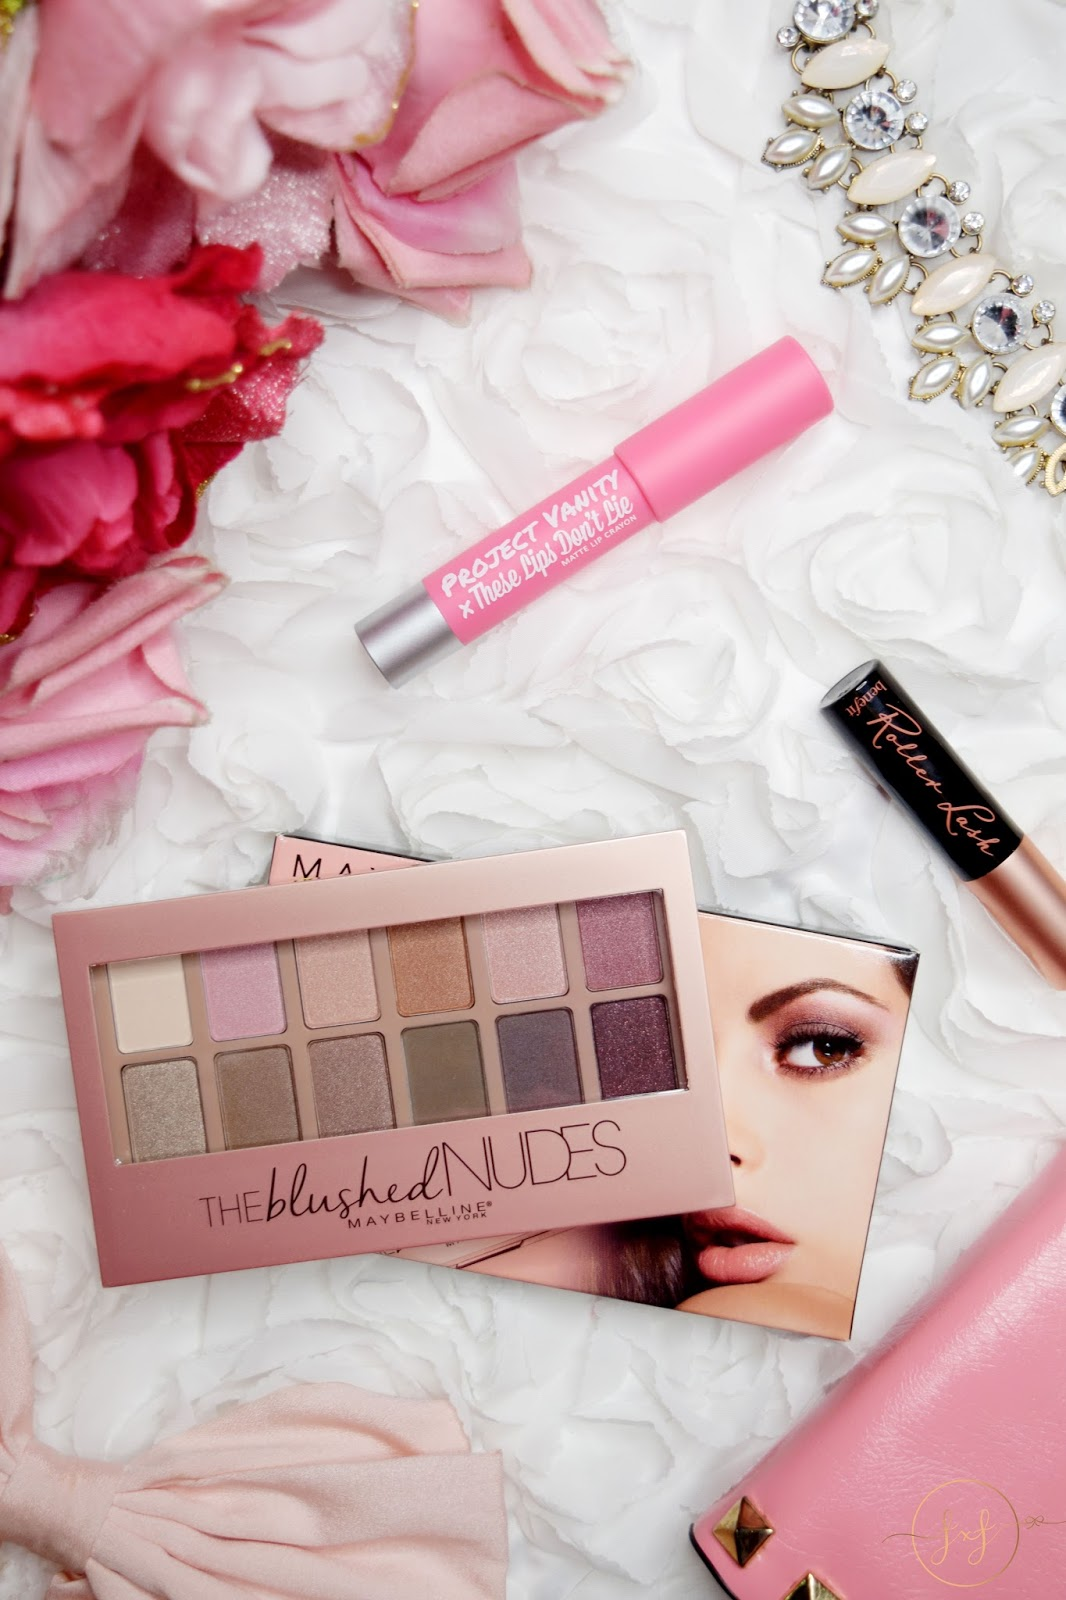 Maybelline Blushed Nudes Palette | Review & Swatches